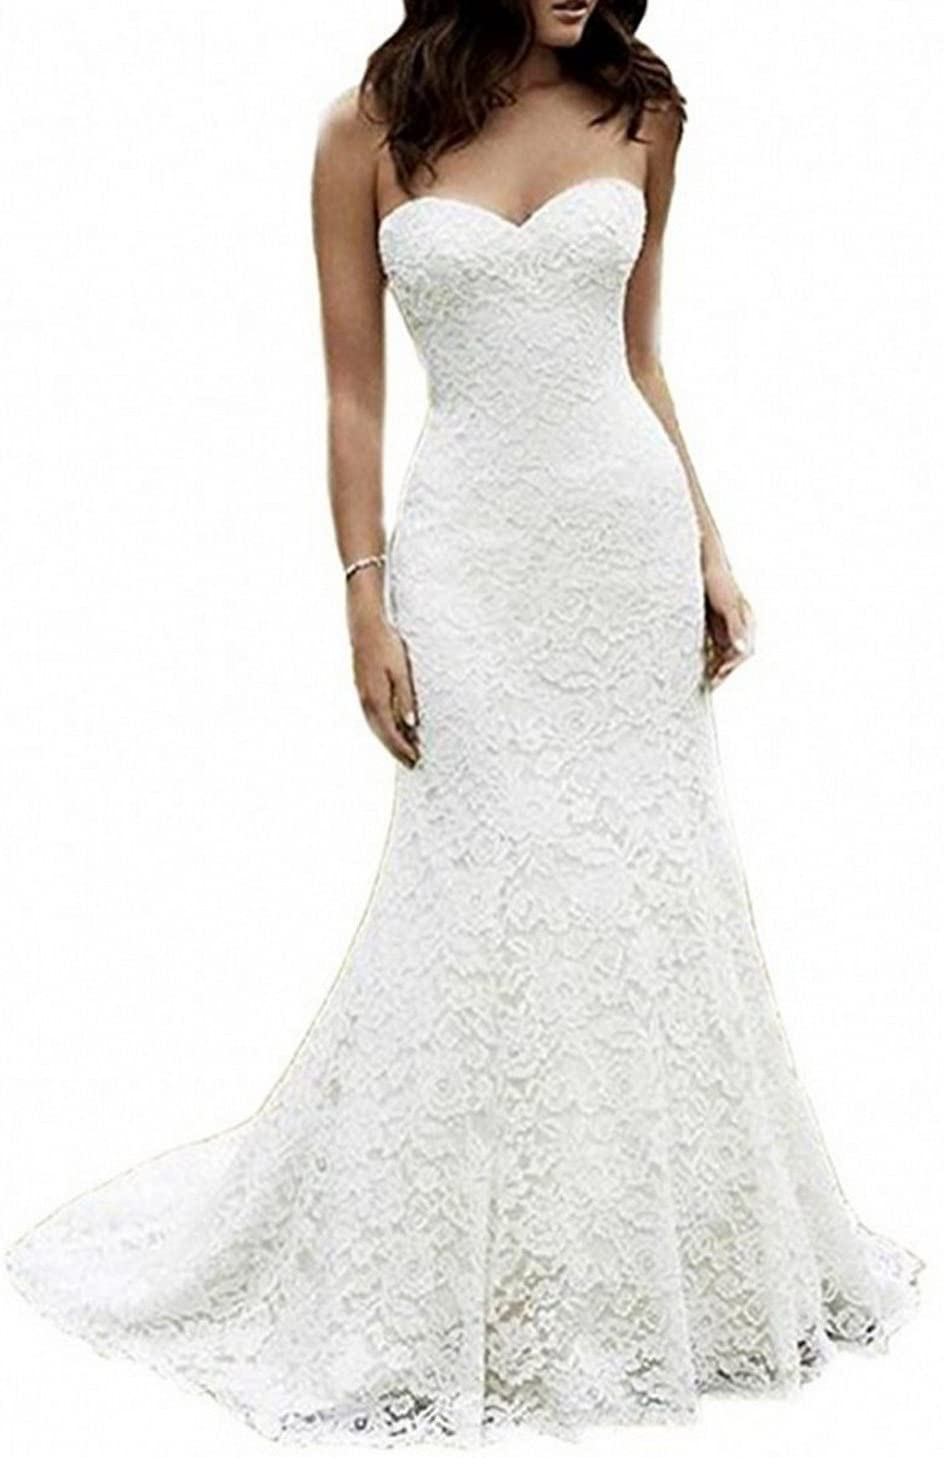 Meganbridal A-line Lace Long Sleeves Floor Length Wedding Dresses with Small Train V Neck Gowns